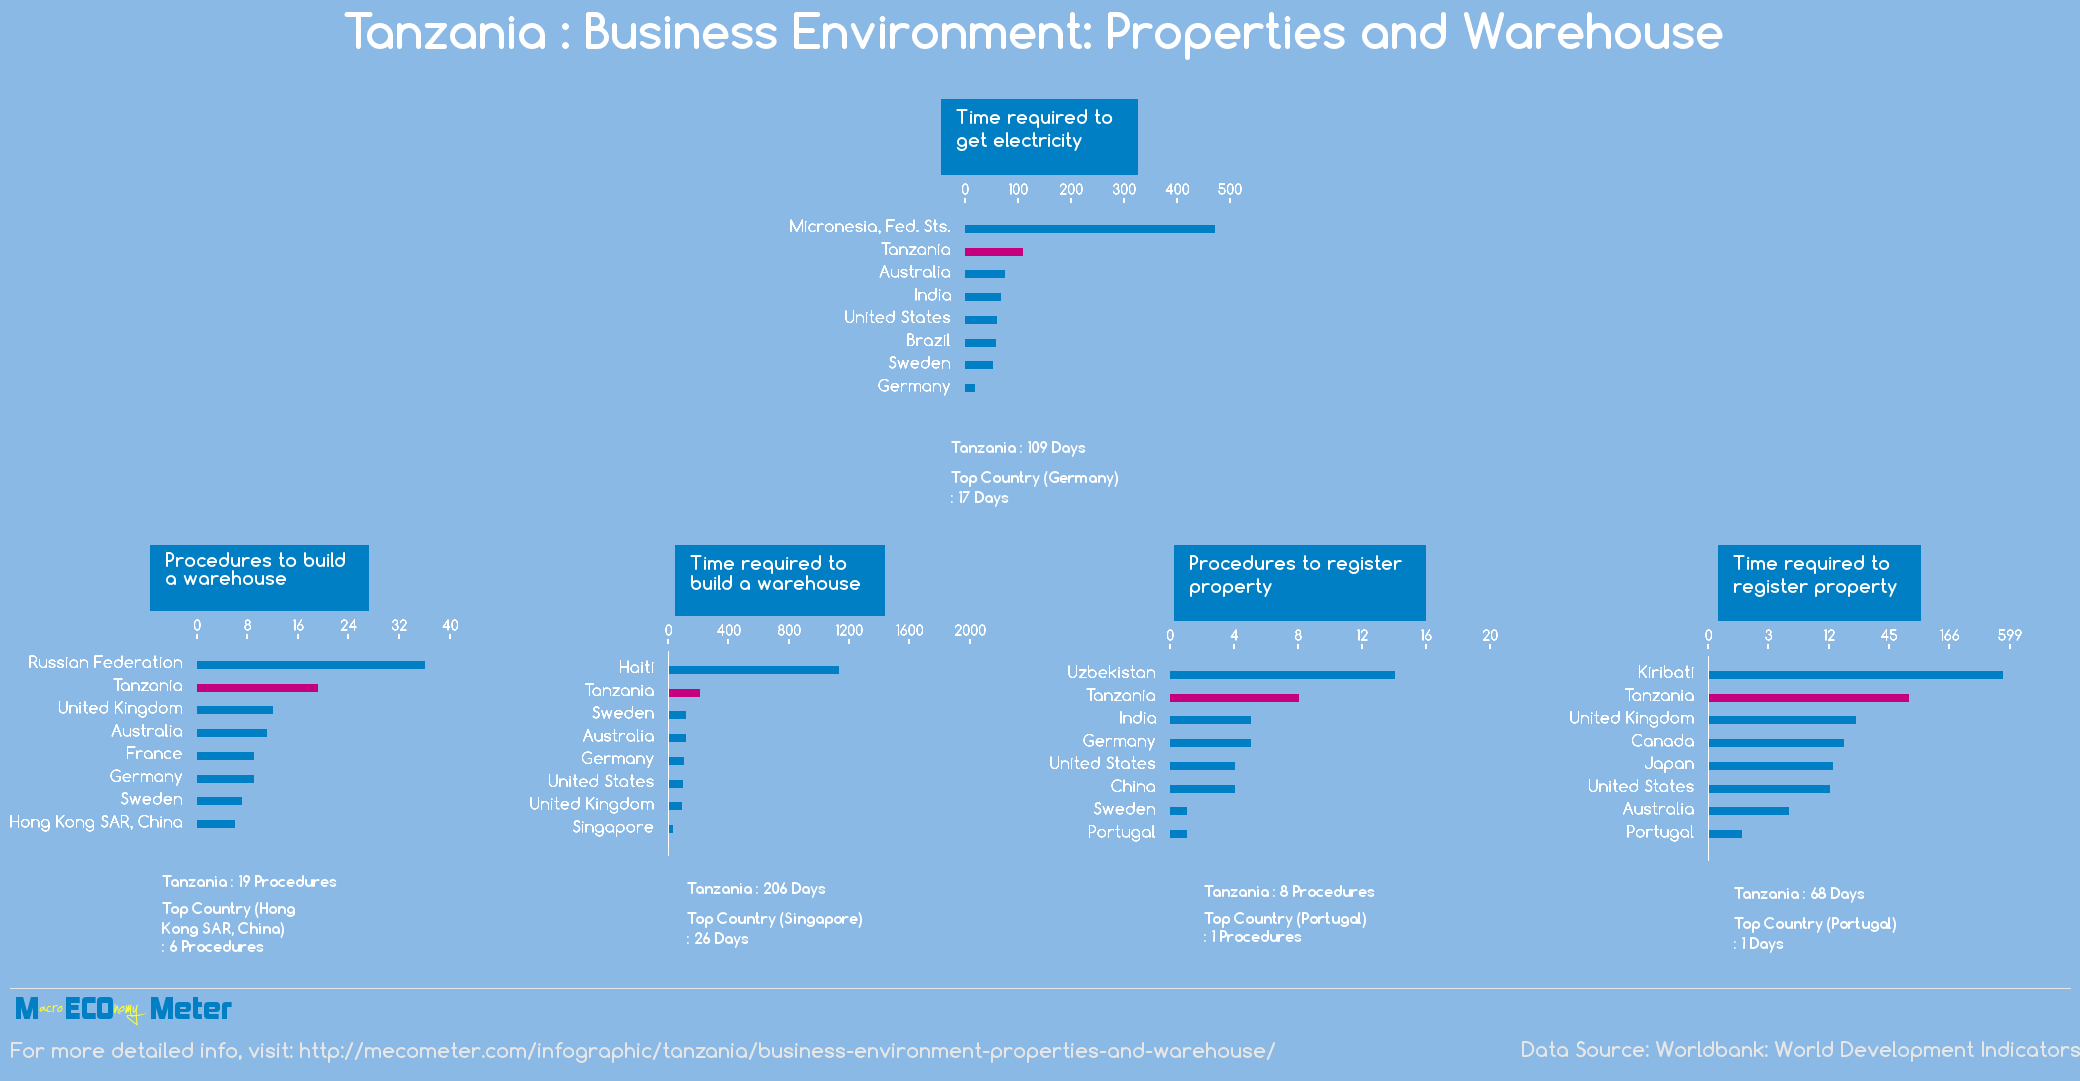 Tanzania : Business Environment: Properties and Warehouse